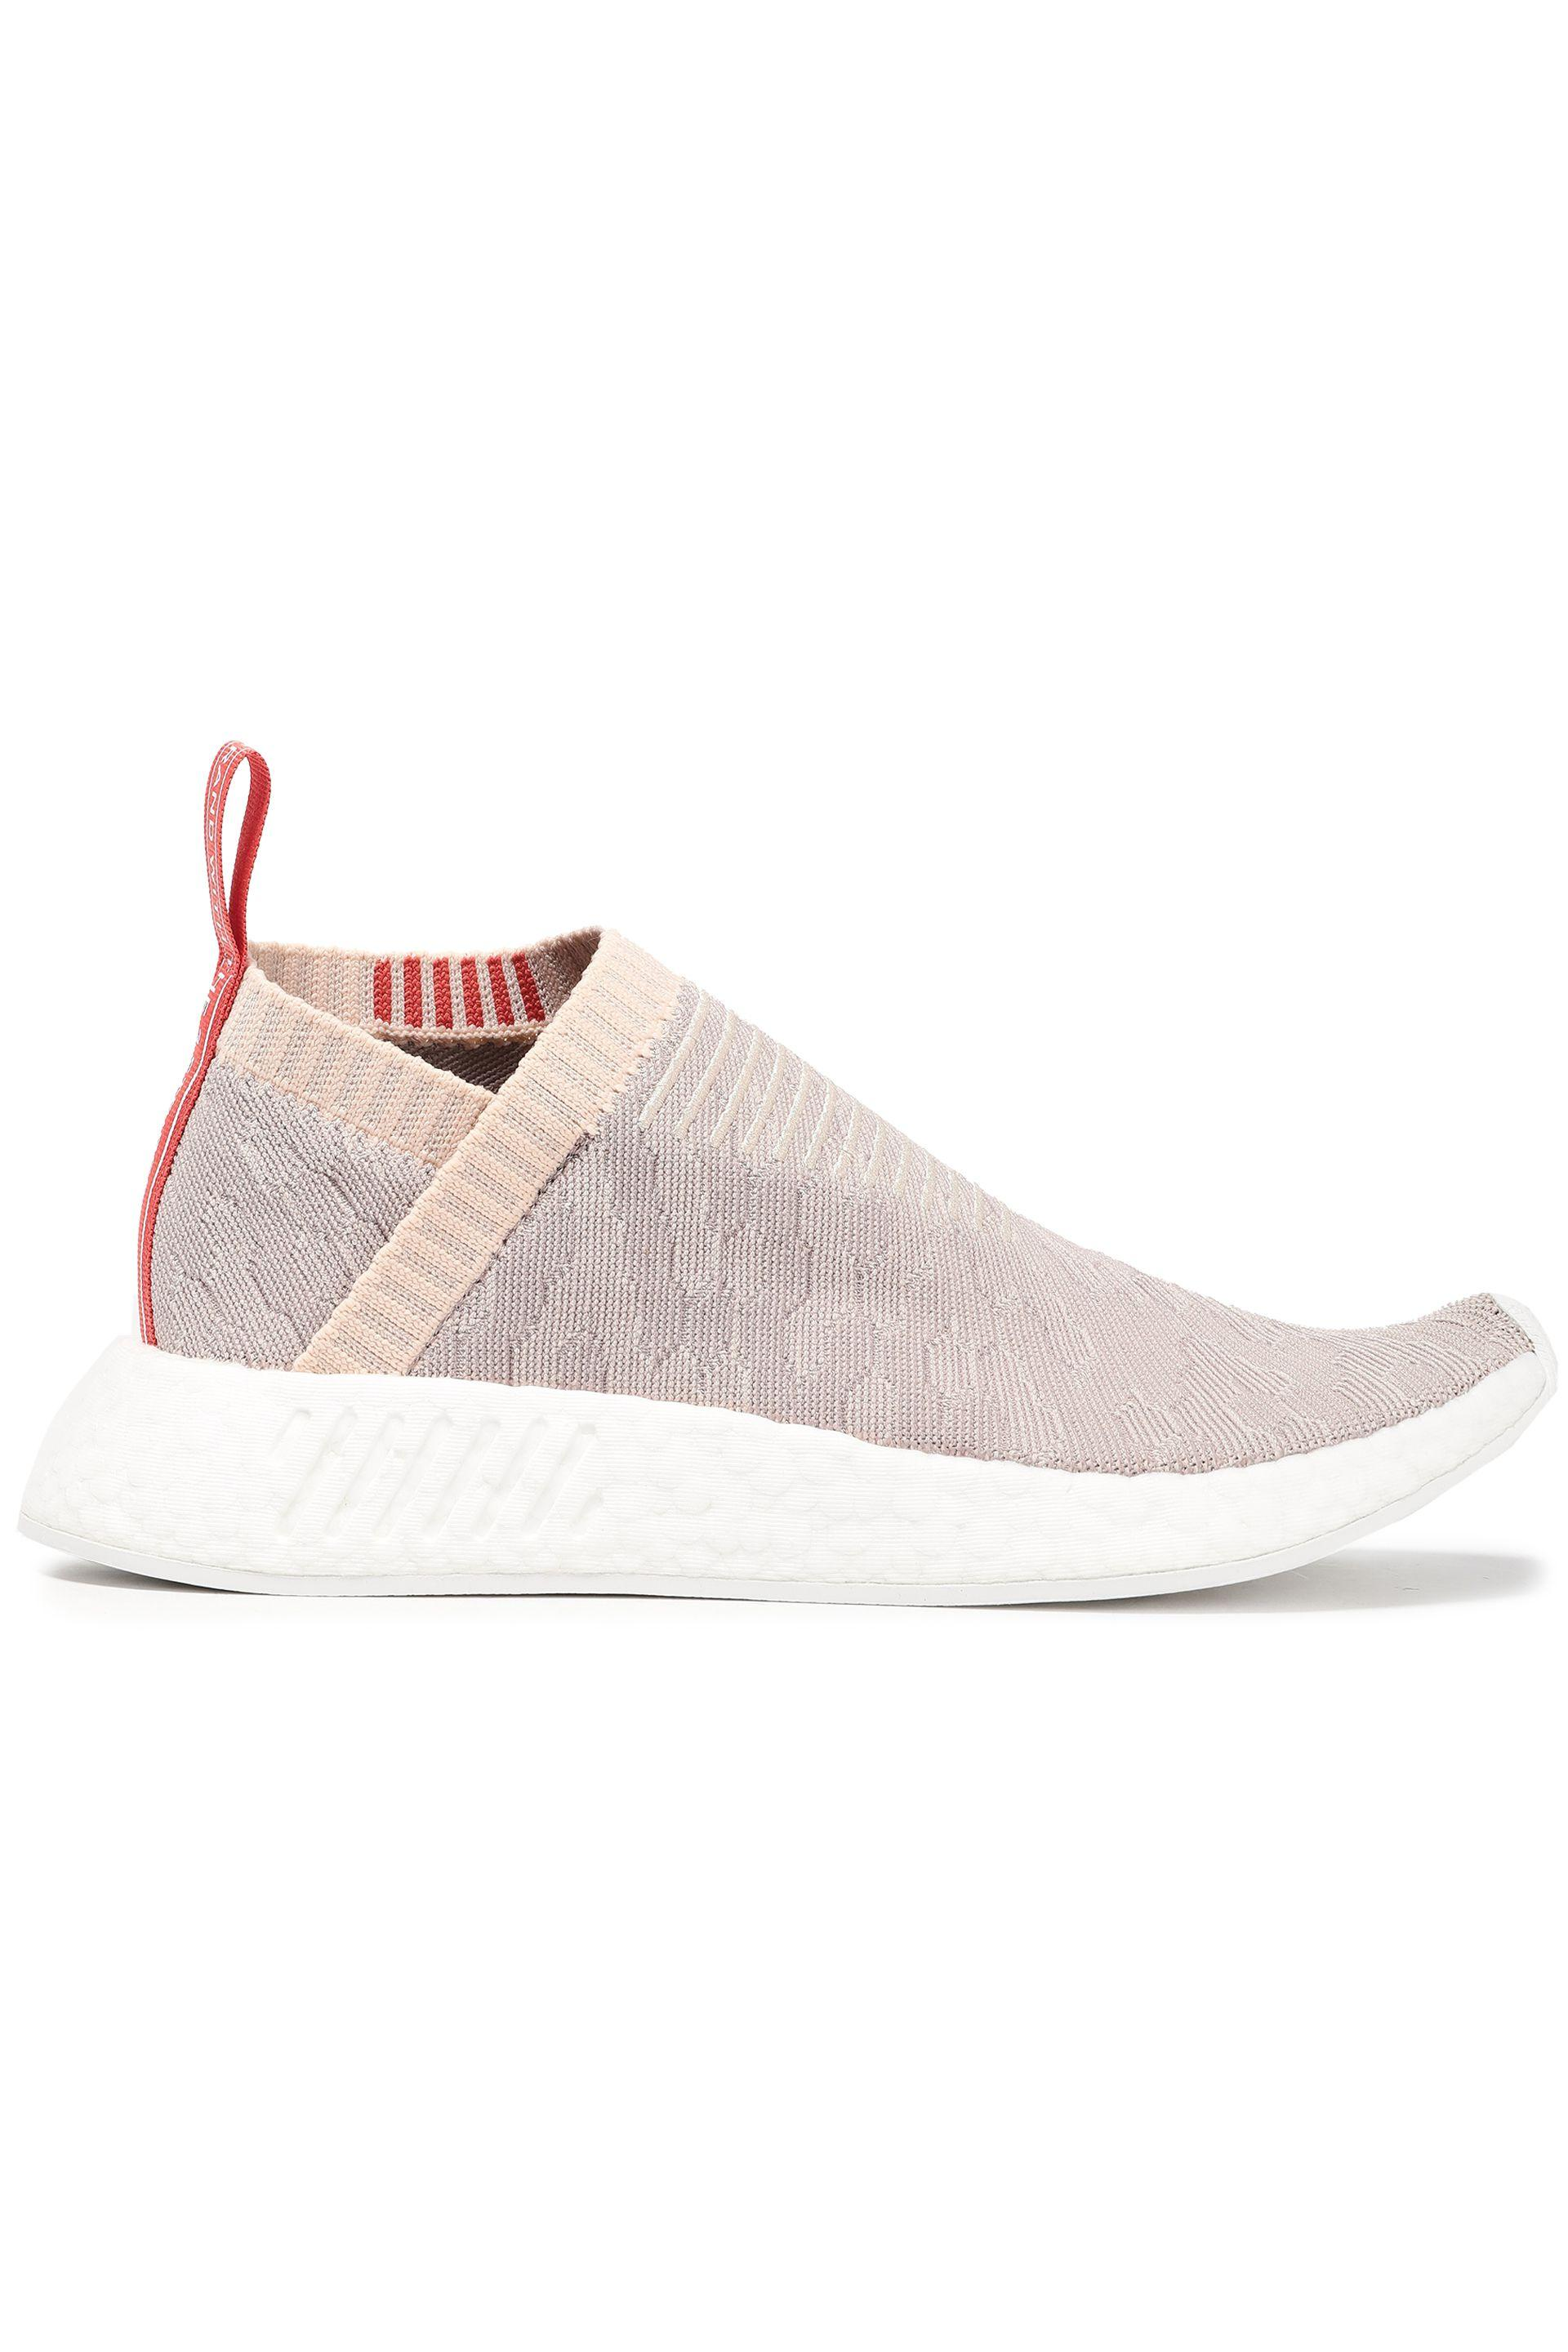 fdd6e7d72 adidas Woman Nmd Cs2 Pk Stretch-knit Slip-on Sneakers Ecru in Pink ...